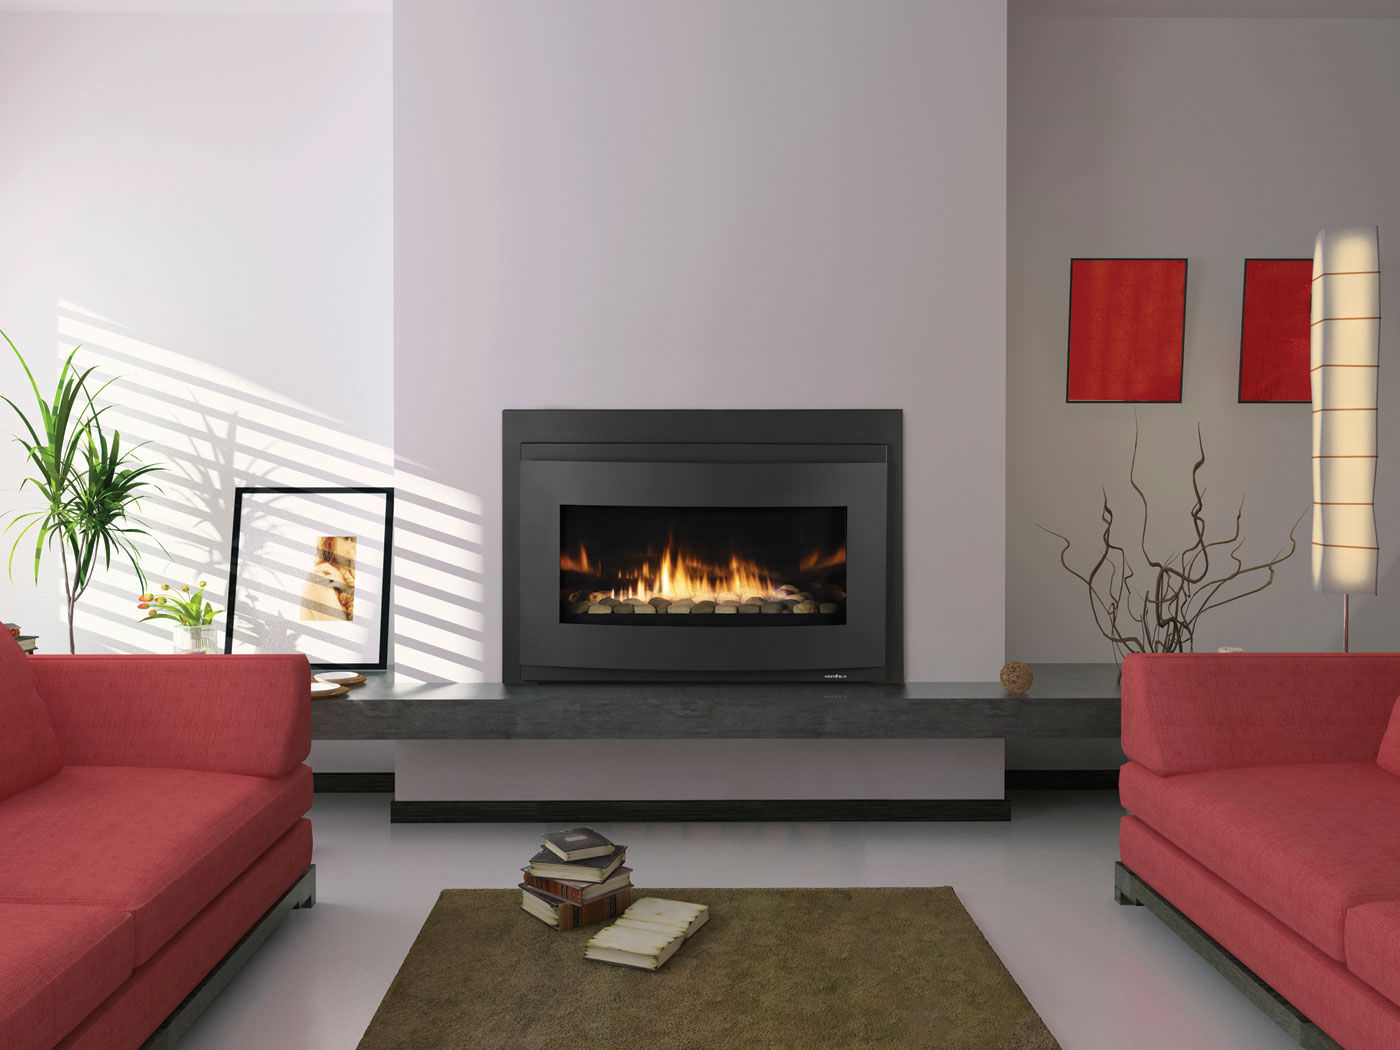 kozy g patio fireplace alpha insert gas heat stone features modern